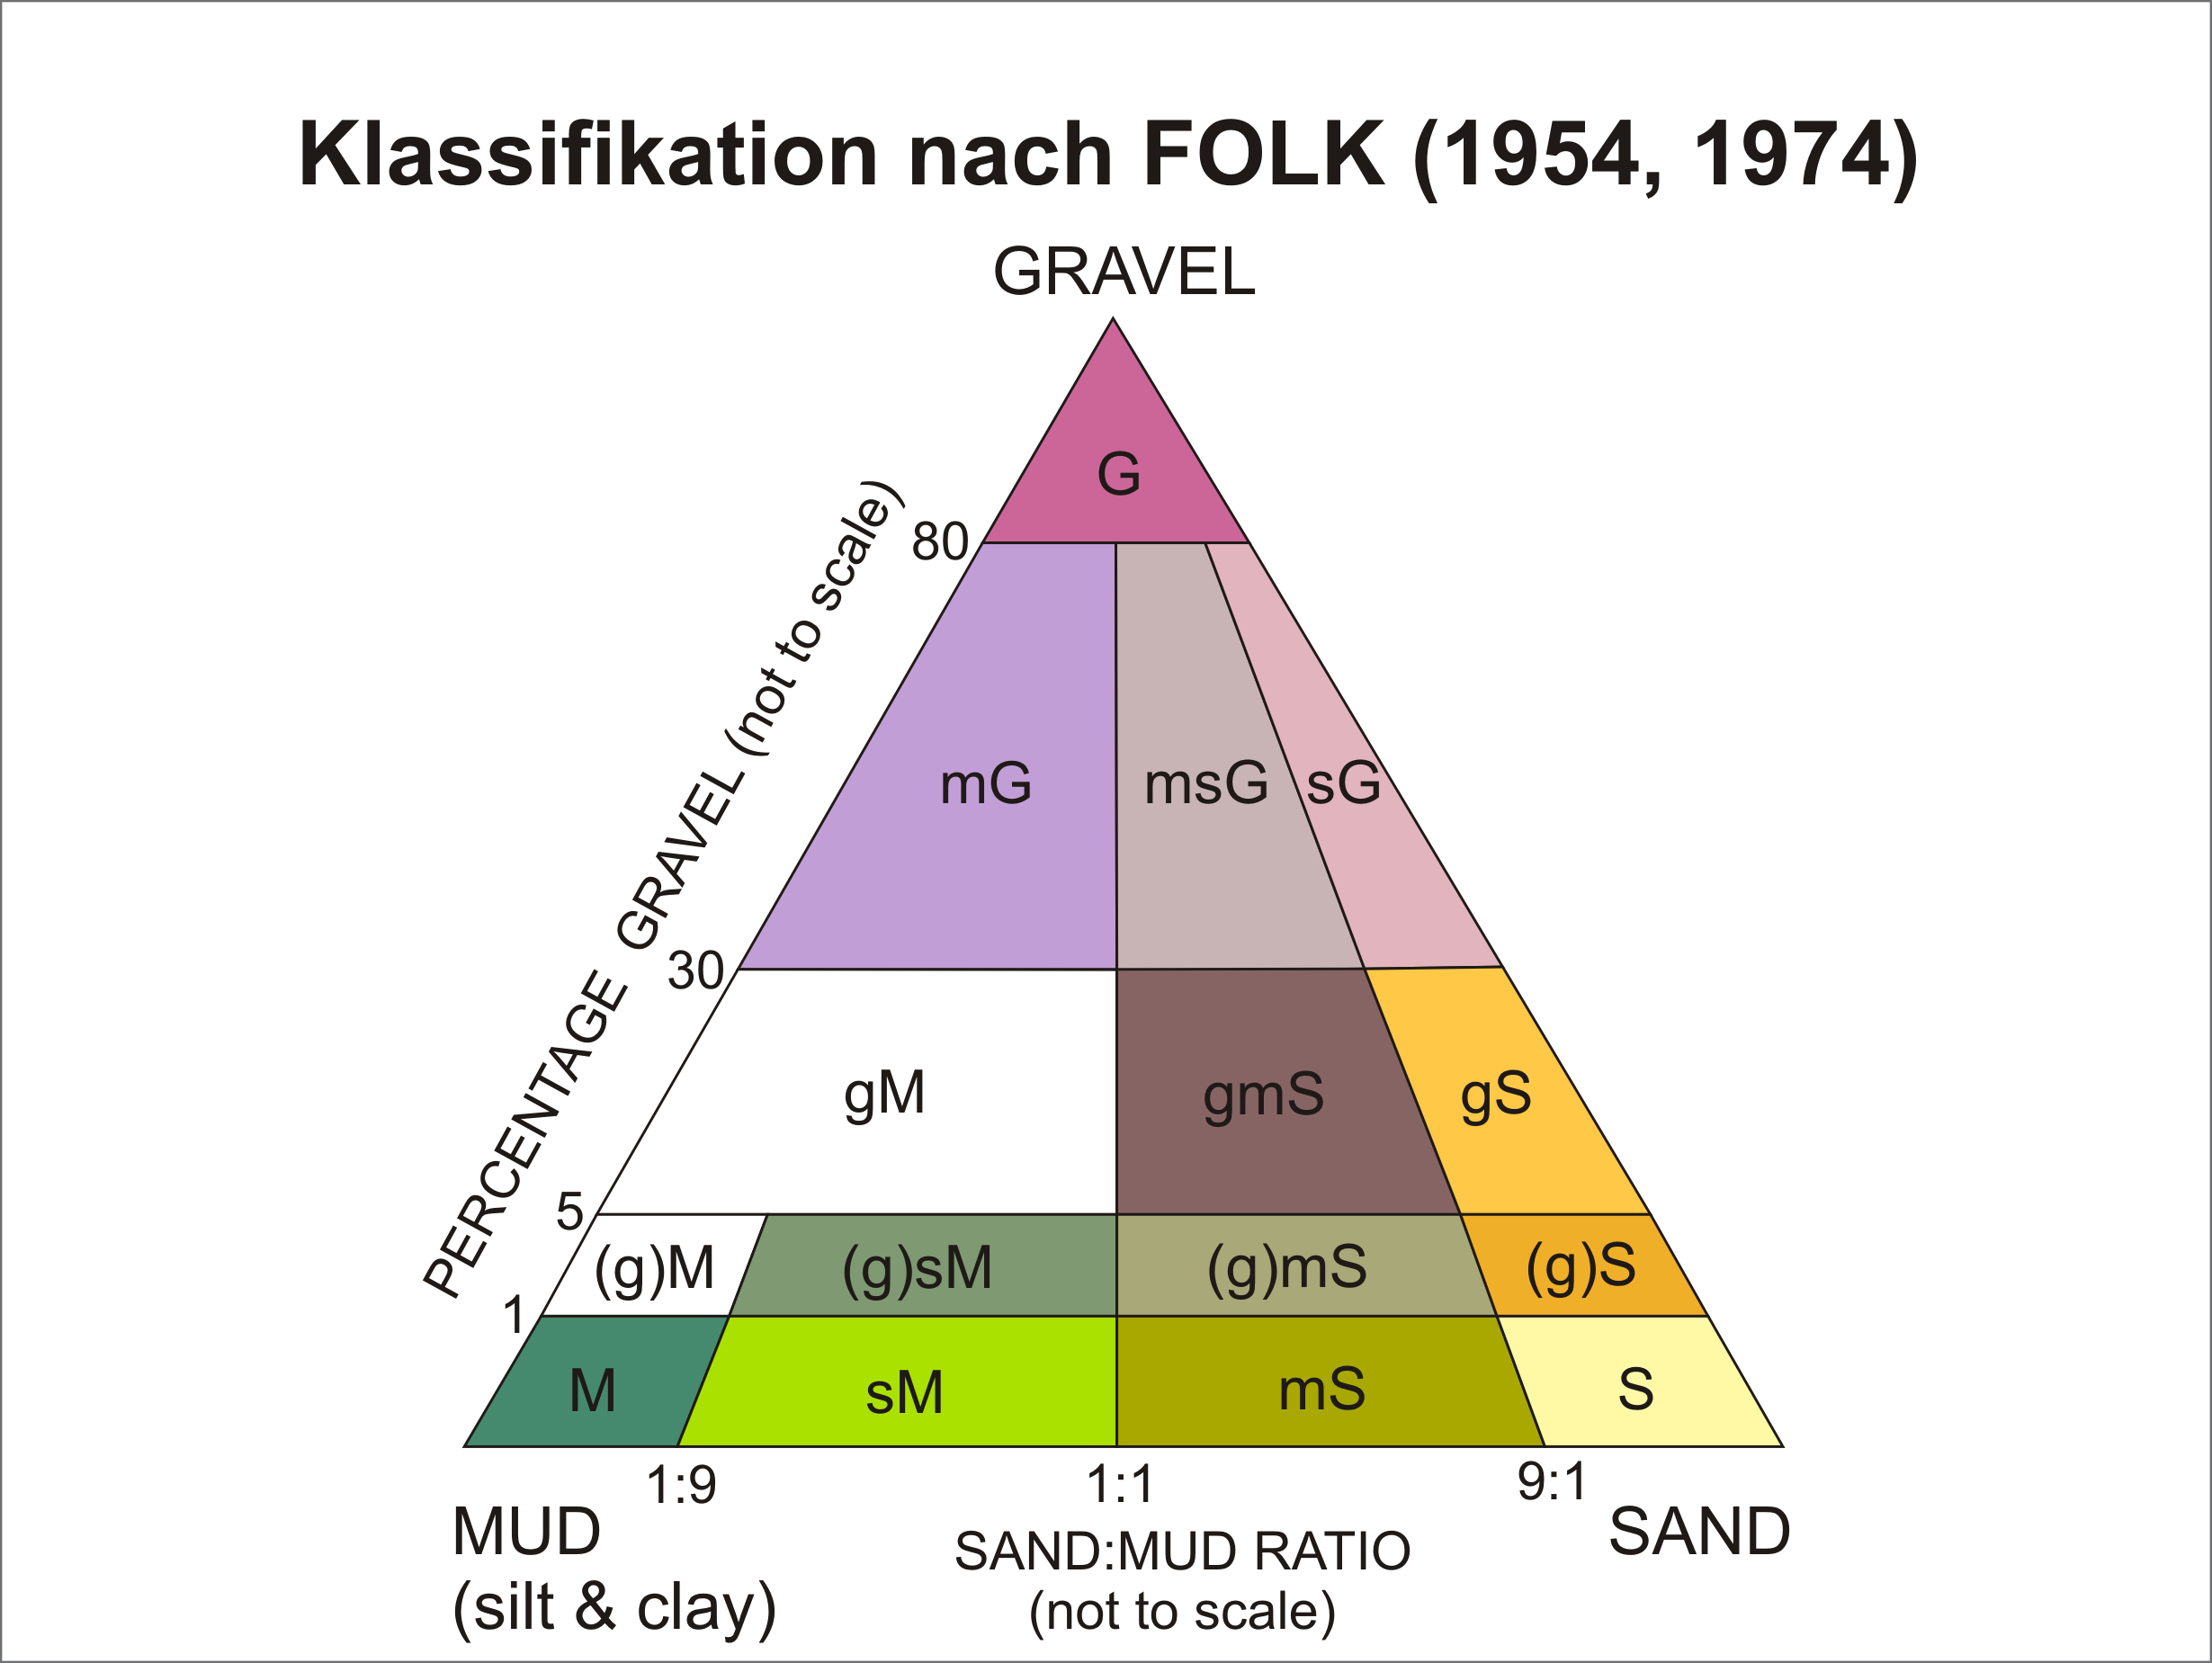 FOLK_Klassifikation_fürThemenreise.png